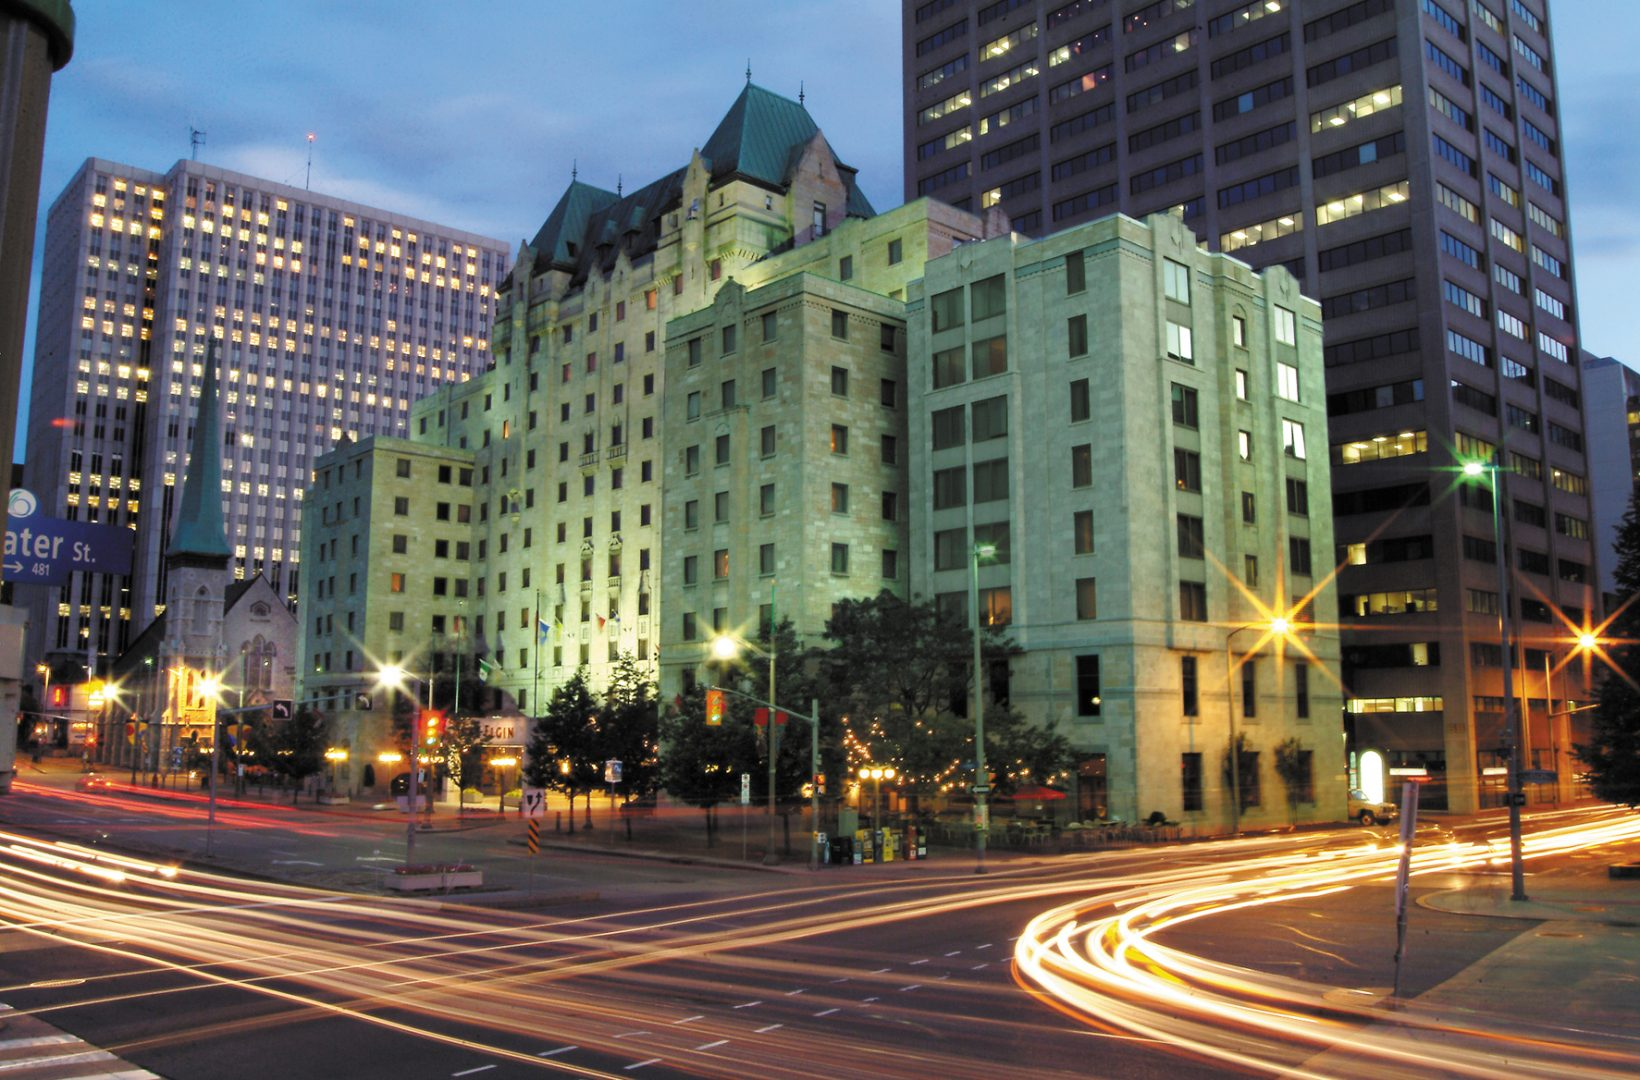 Lord Elgin Hotel downtown Ottawa